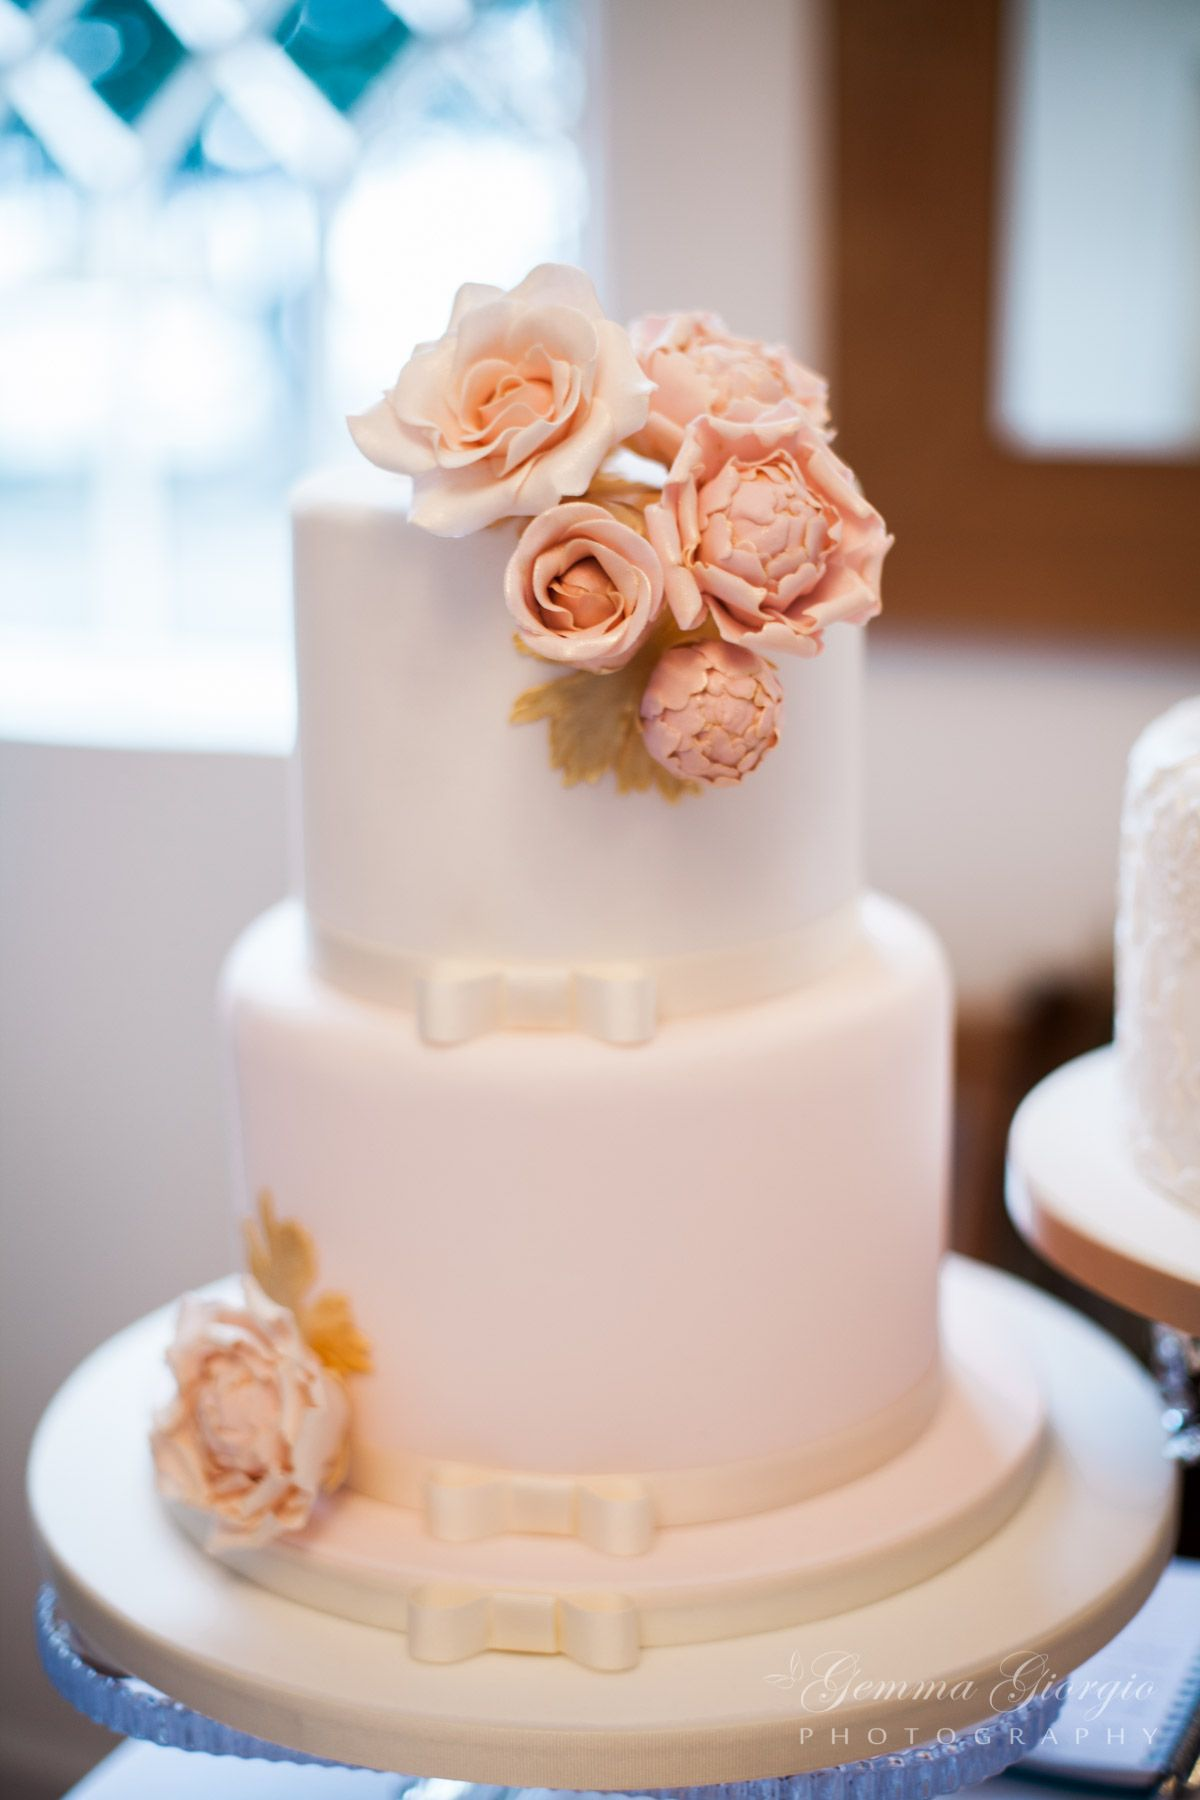 Blush Pink And Ivory 2 Tier Wedding Cake With Sugar Peonies Roses Gold Foliage From Sticky Fingers Co